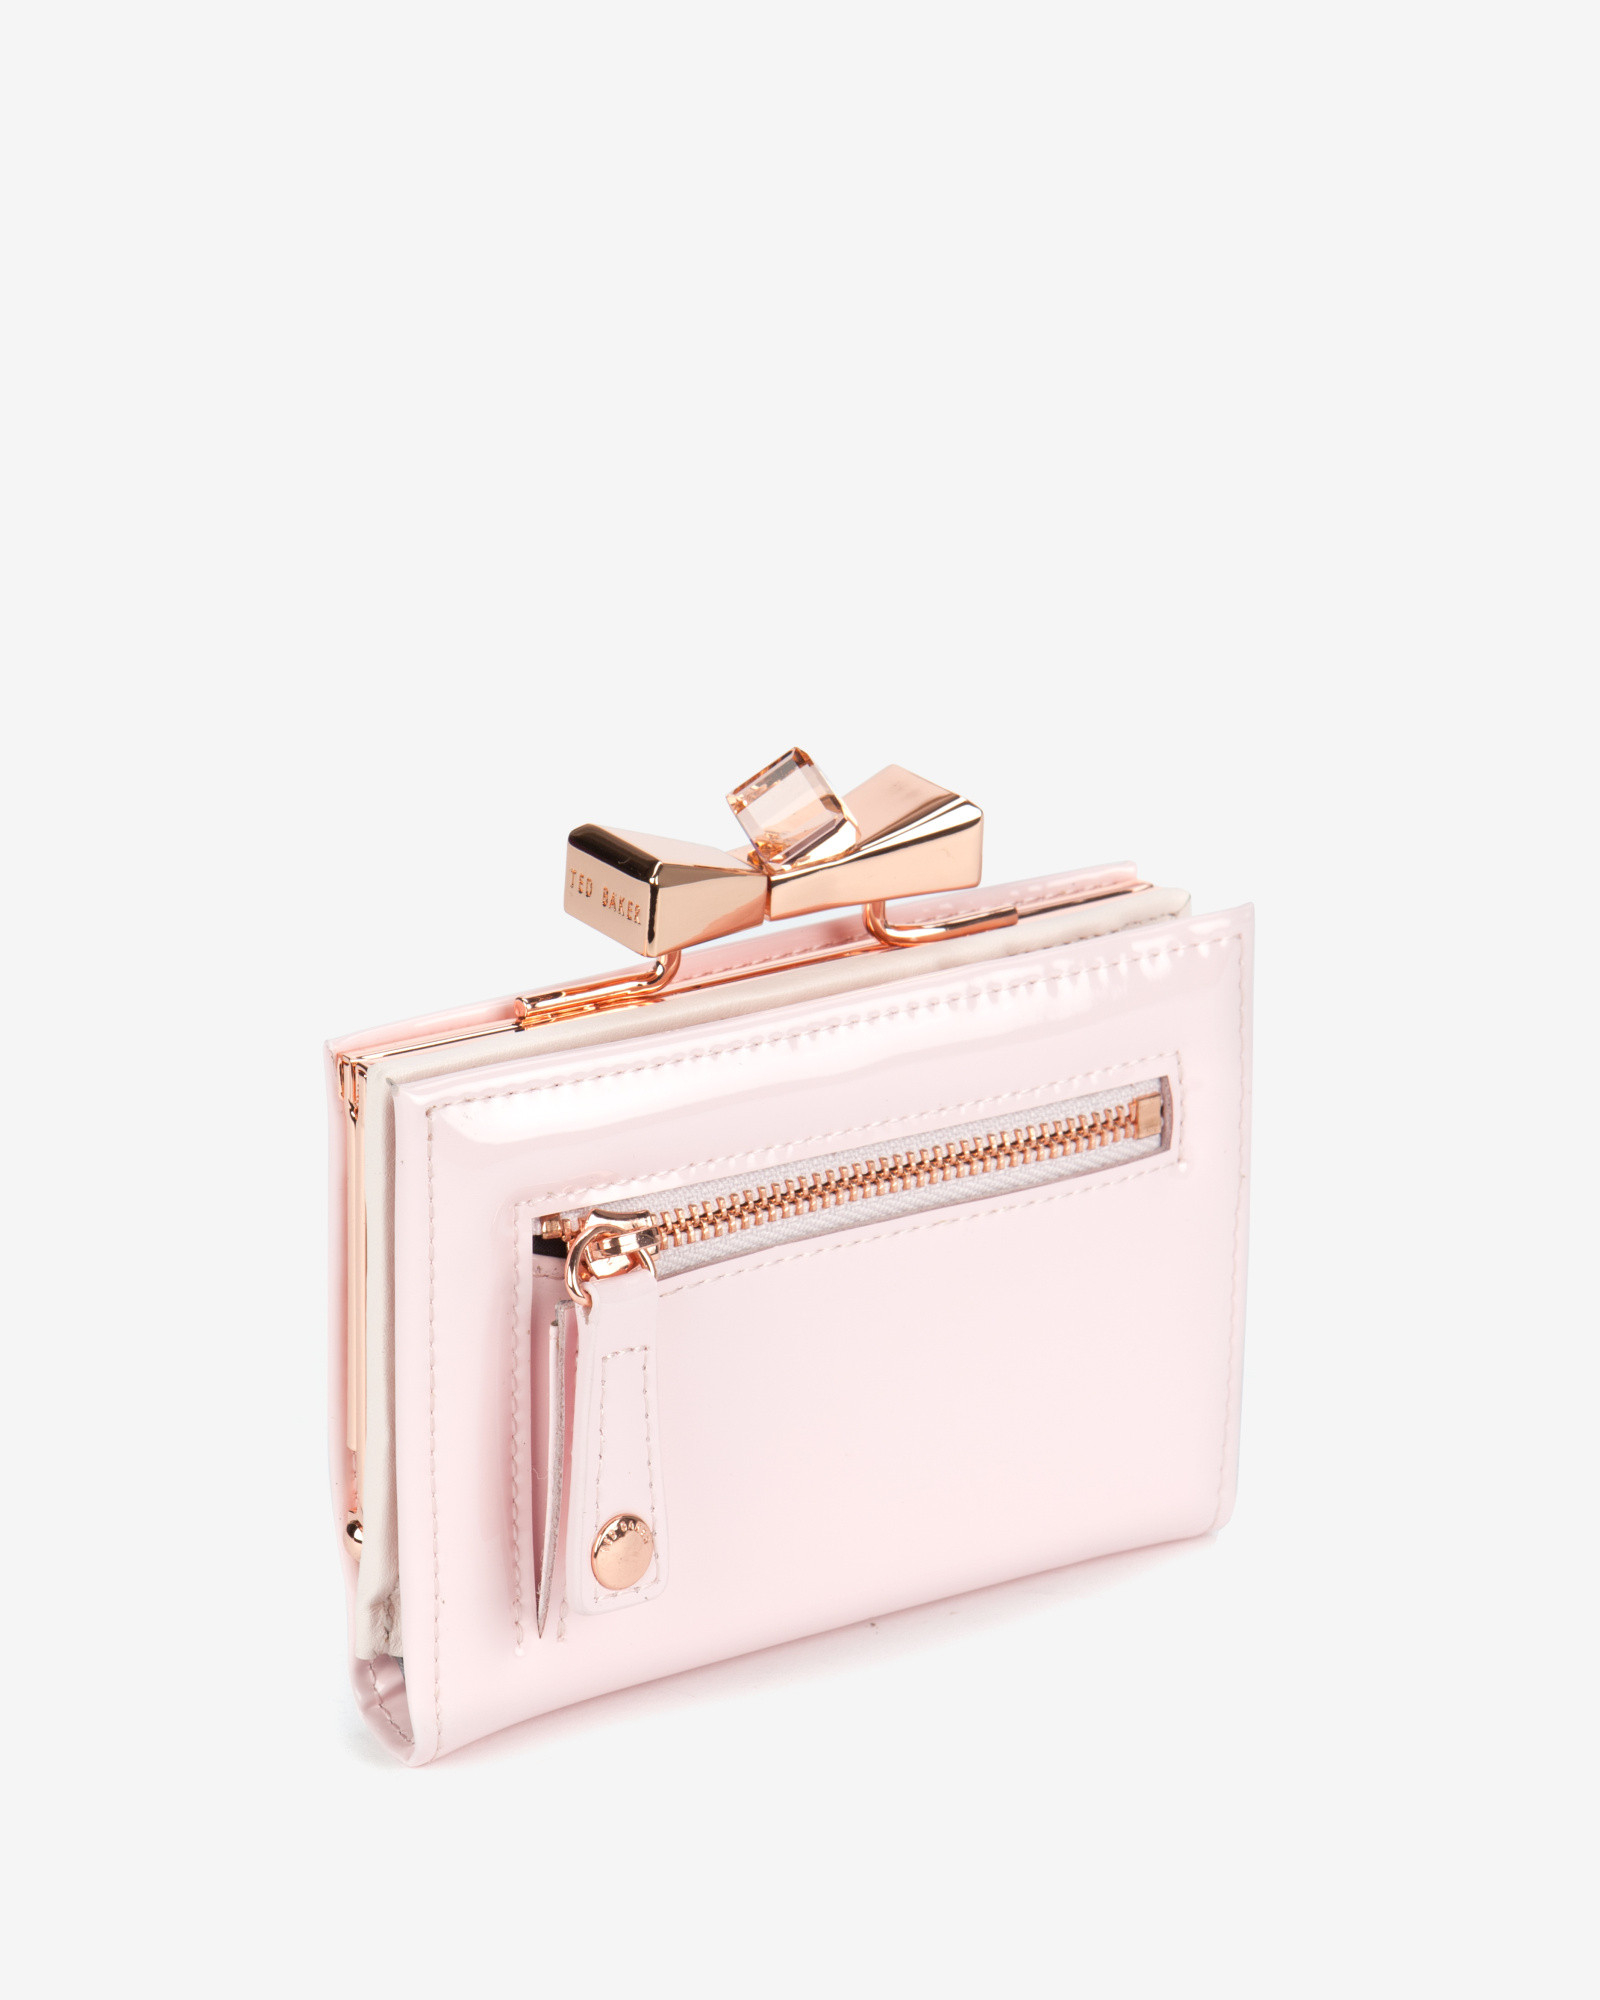 2db832e489e Ted Baker Small Patent Crystal Purse in Pink - Lyst